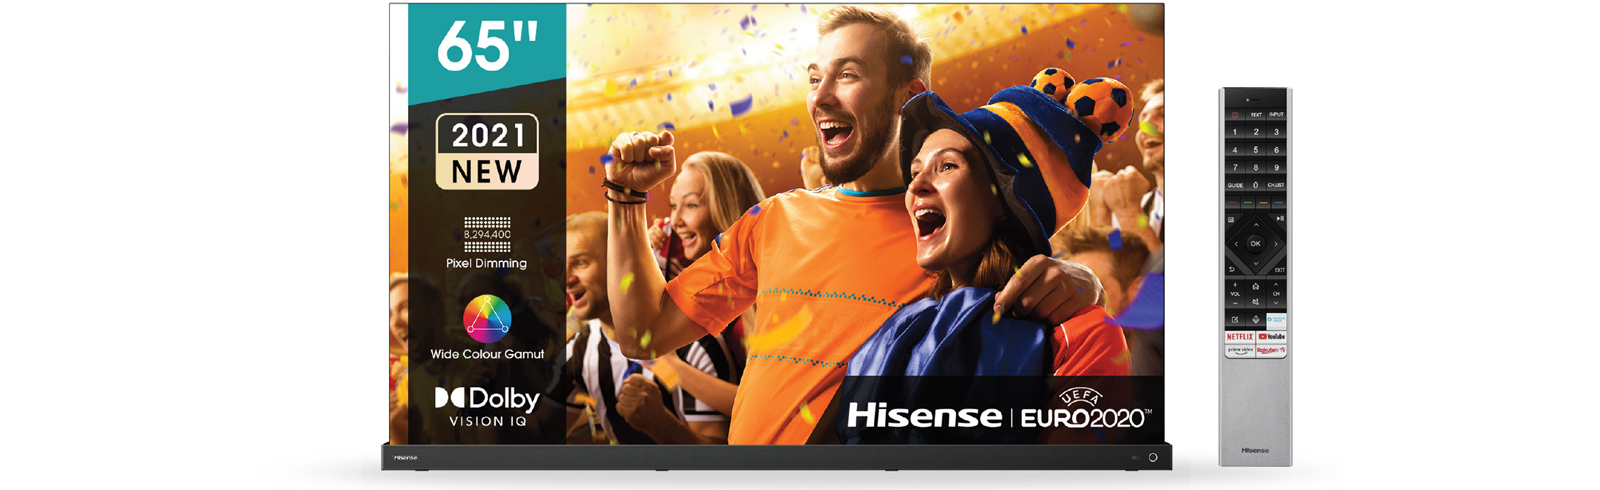 2021 Hisense A9G OLED 4K TVs for Europe - specifications and features